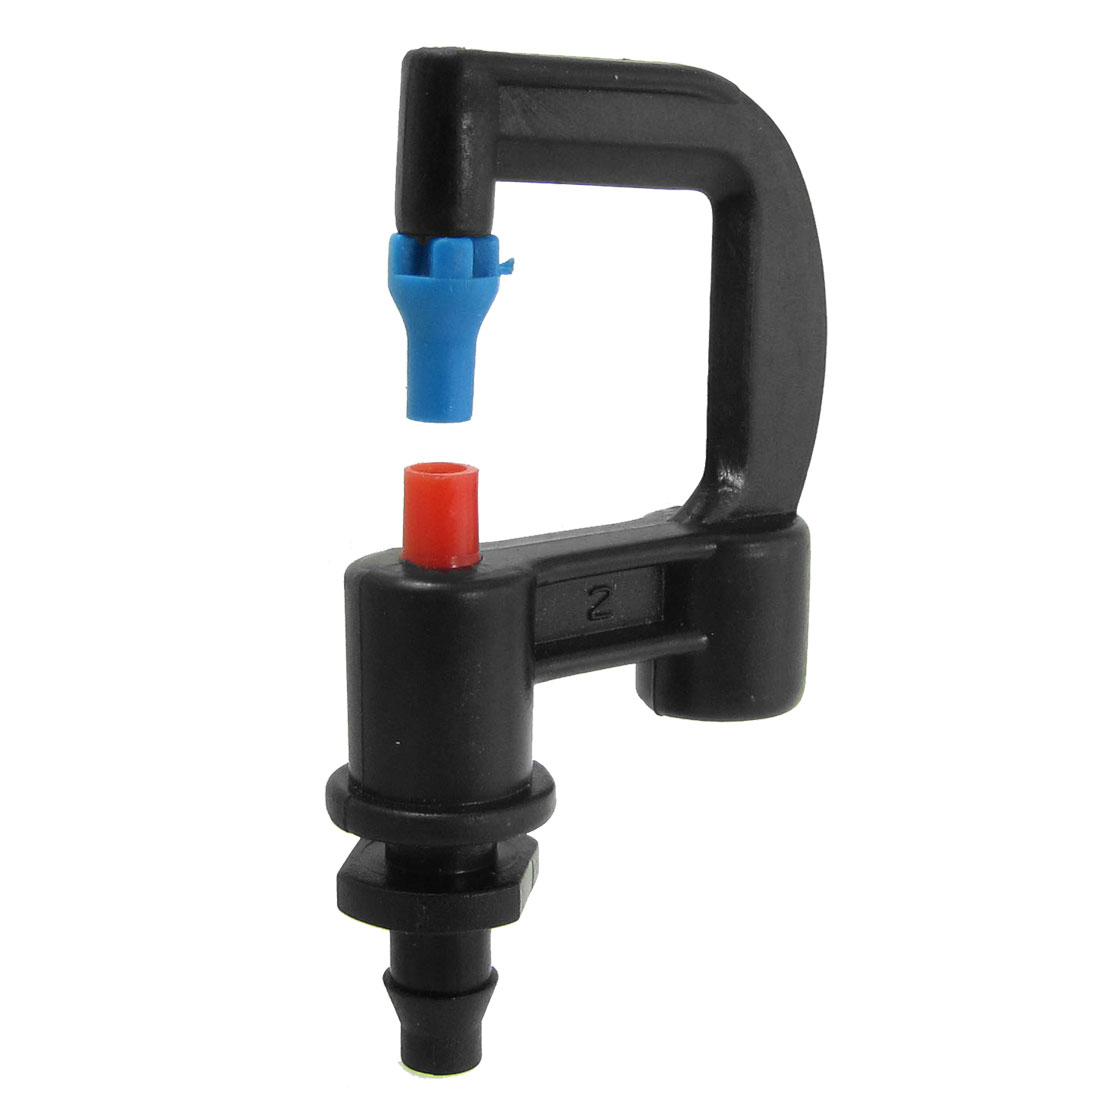 Blue Red Water Outlet Gardem Threaded Plastic Sprayer Nozzle Black